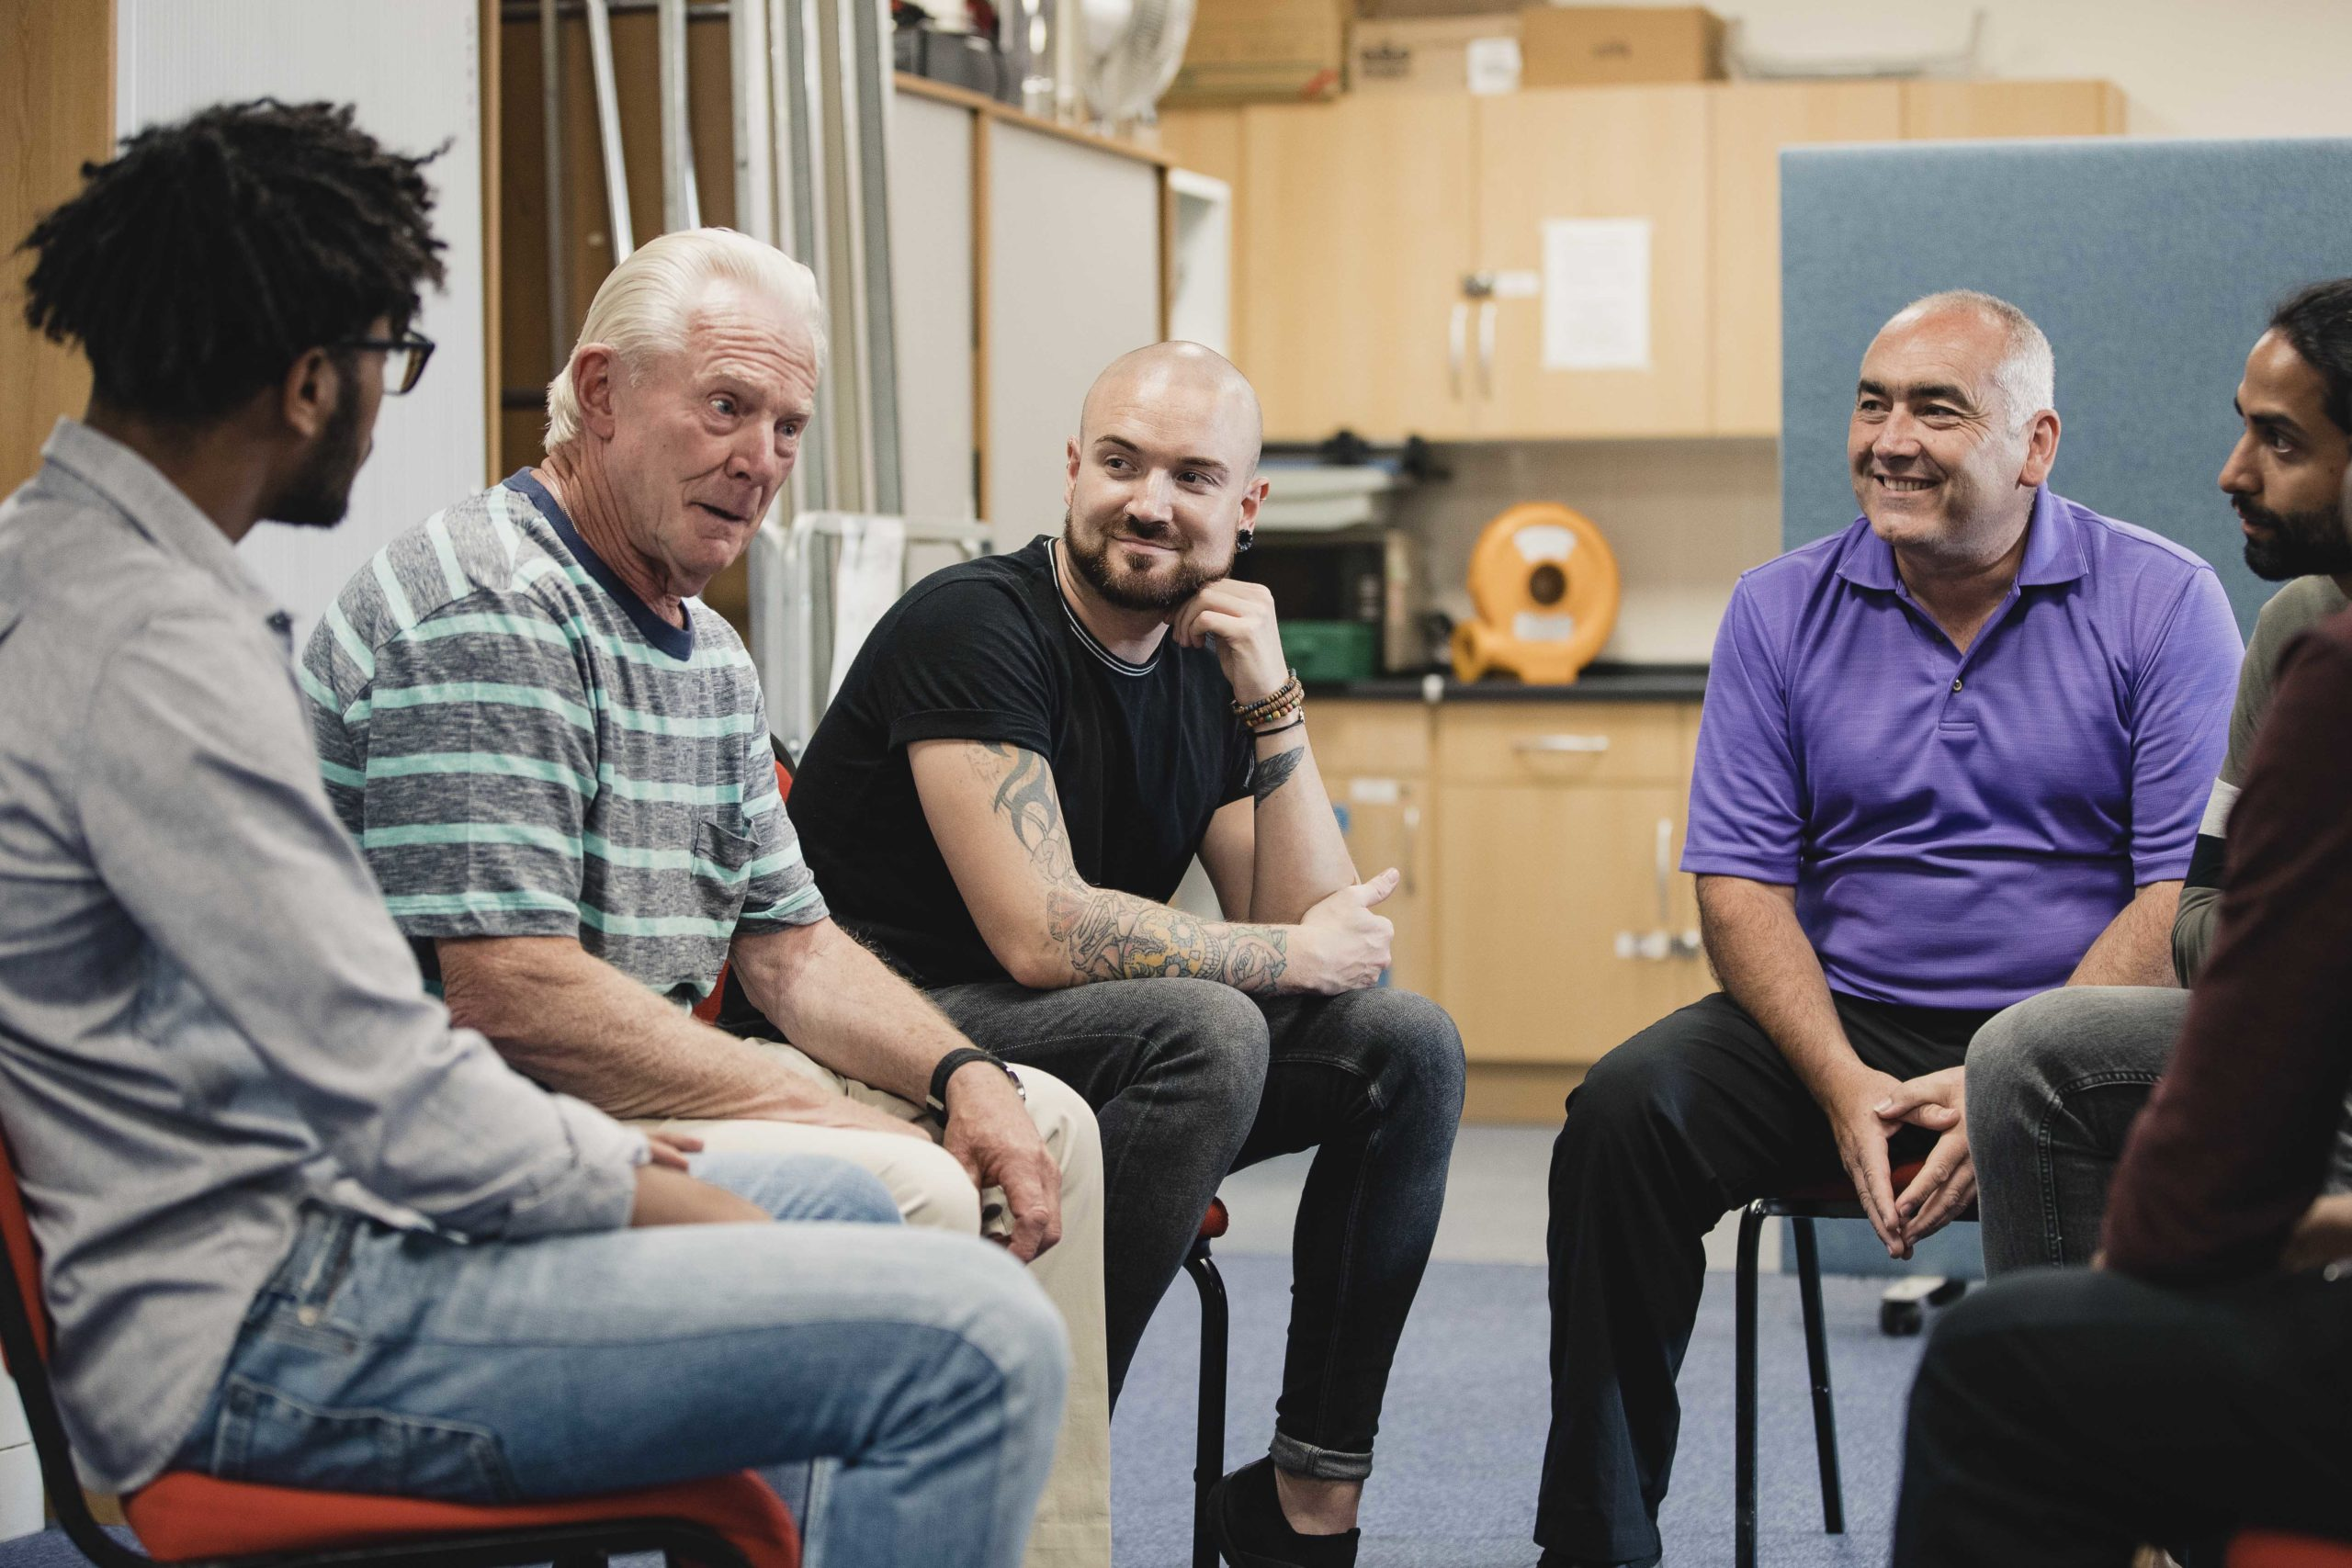 Diverse group of men are talking and laughing together in a mental health support group.